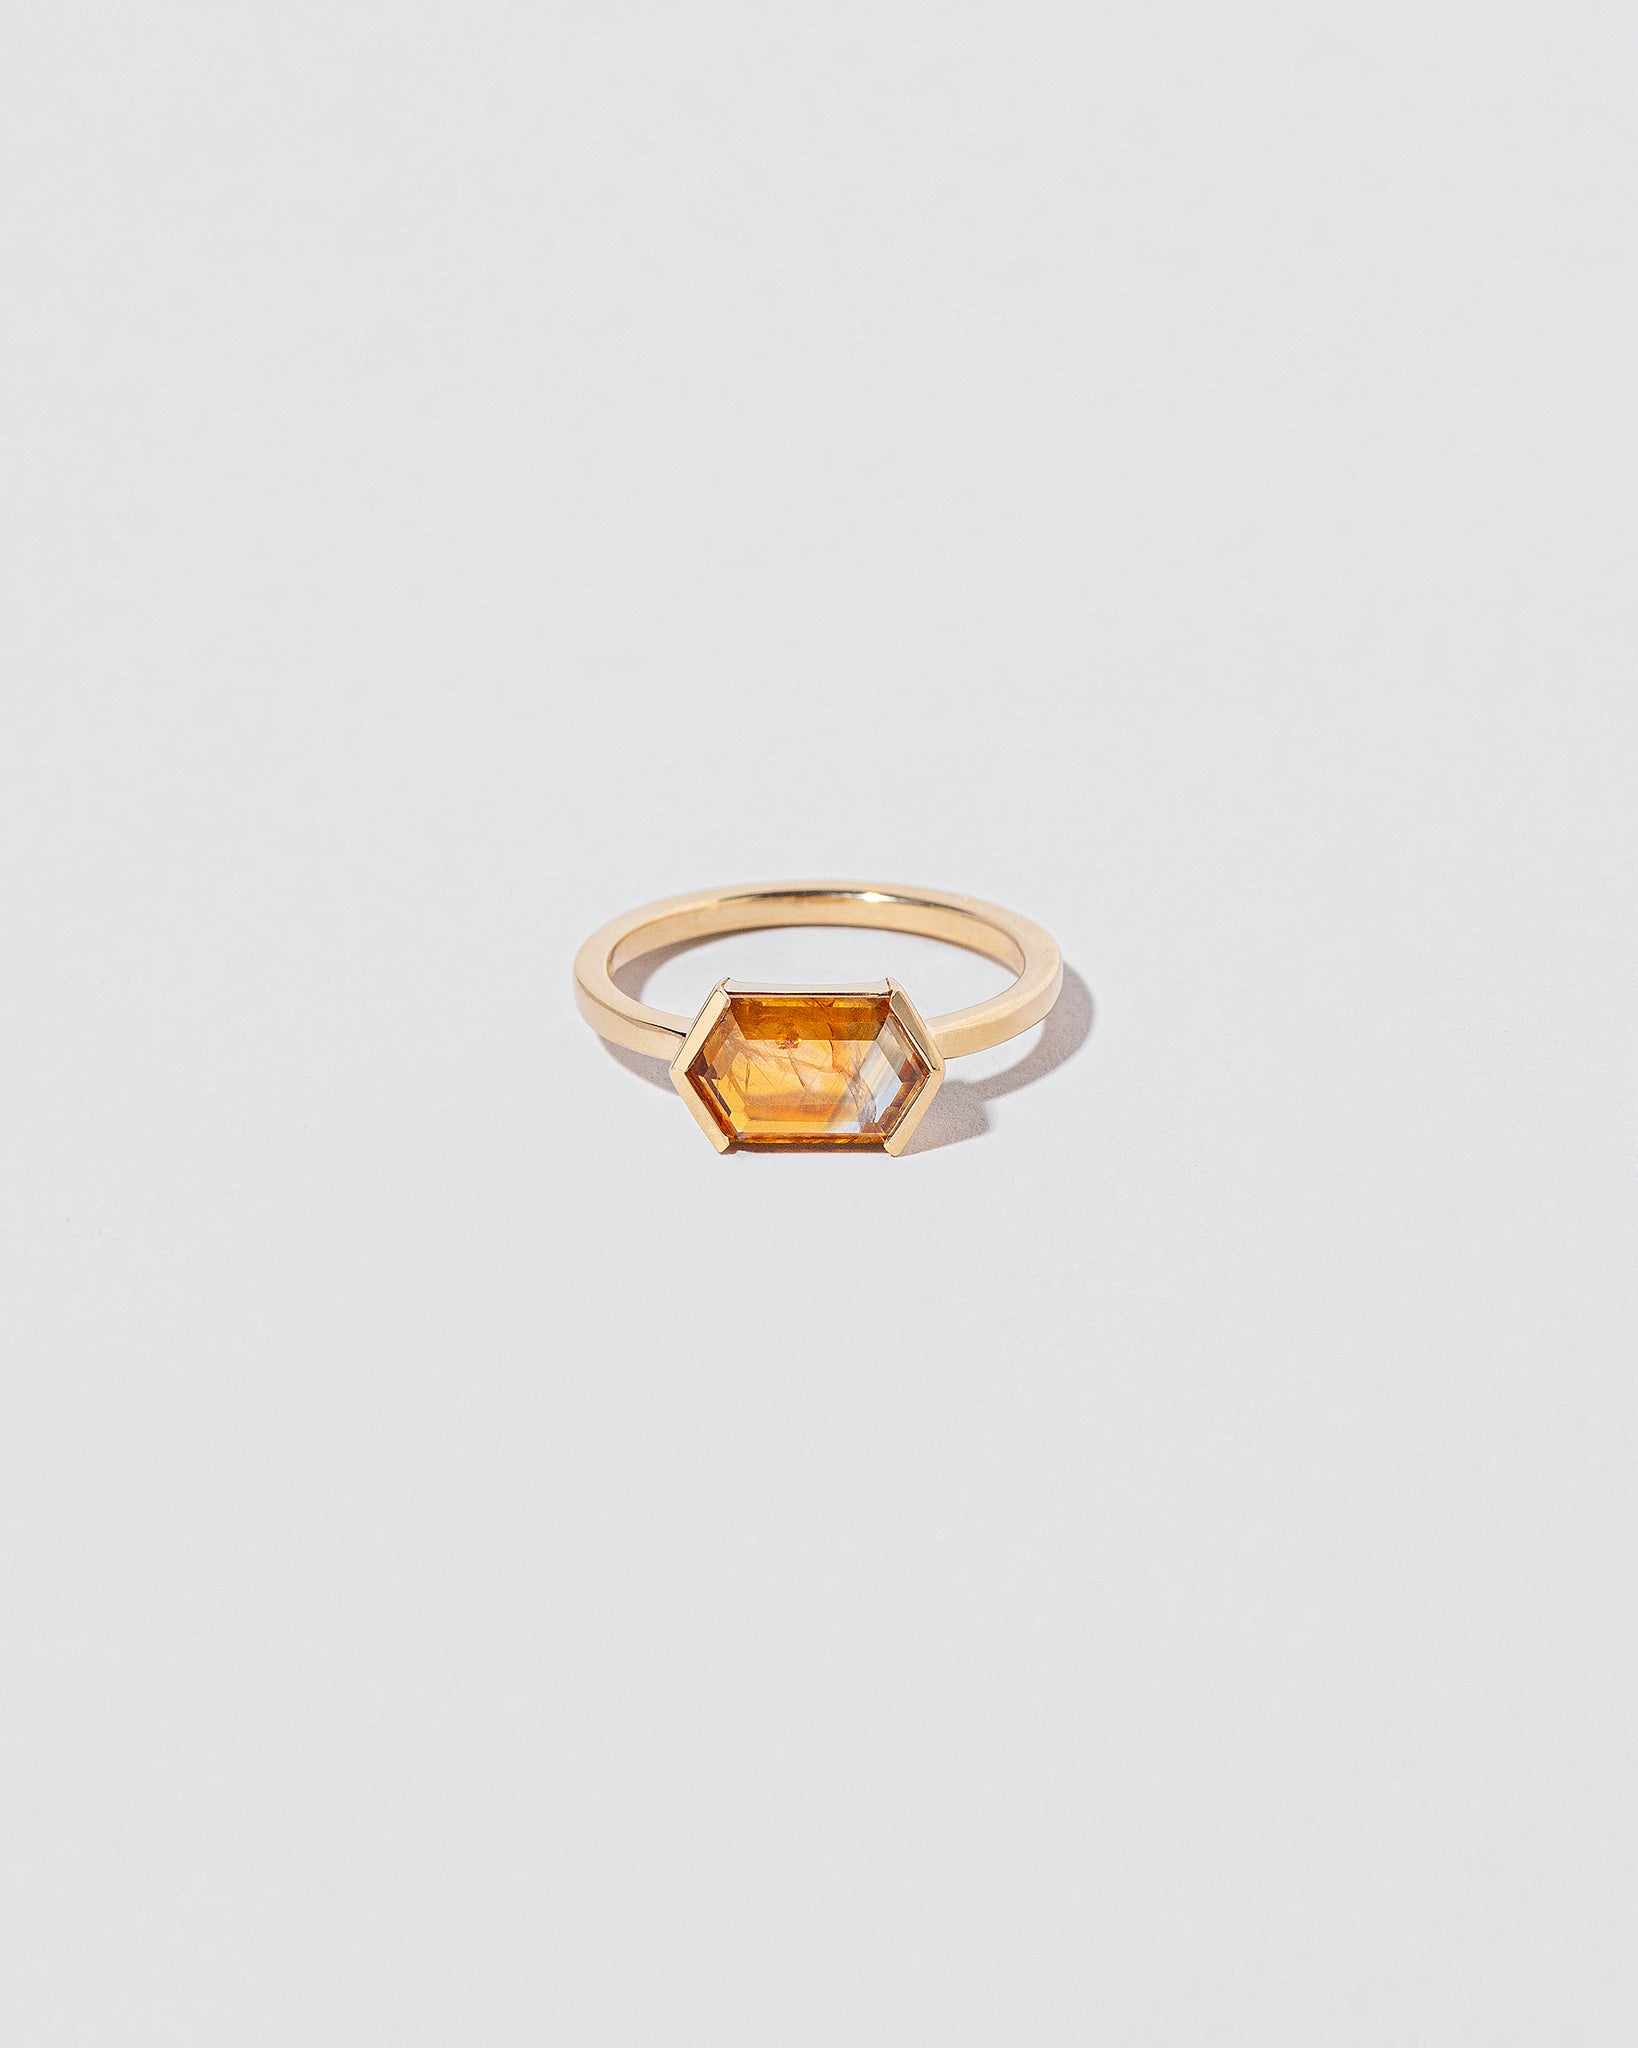 Dawnstar Ring front facing